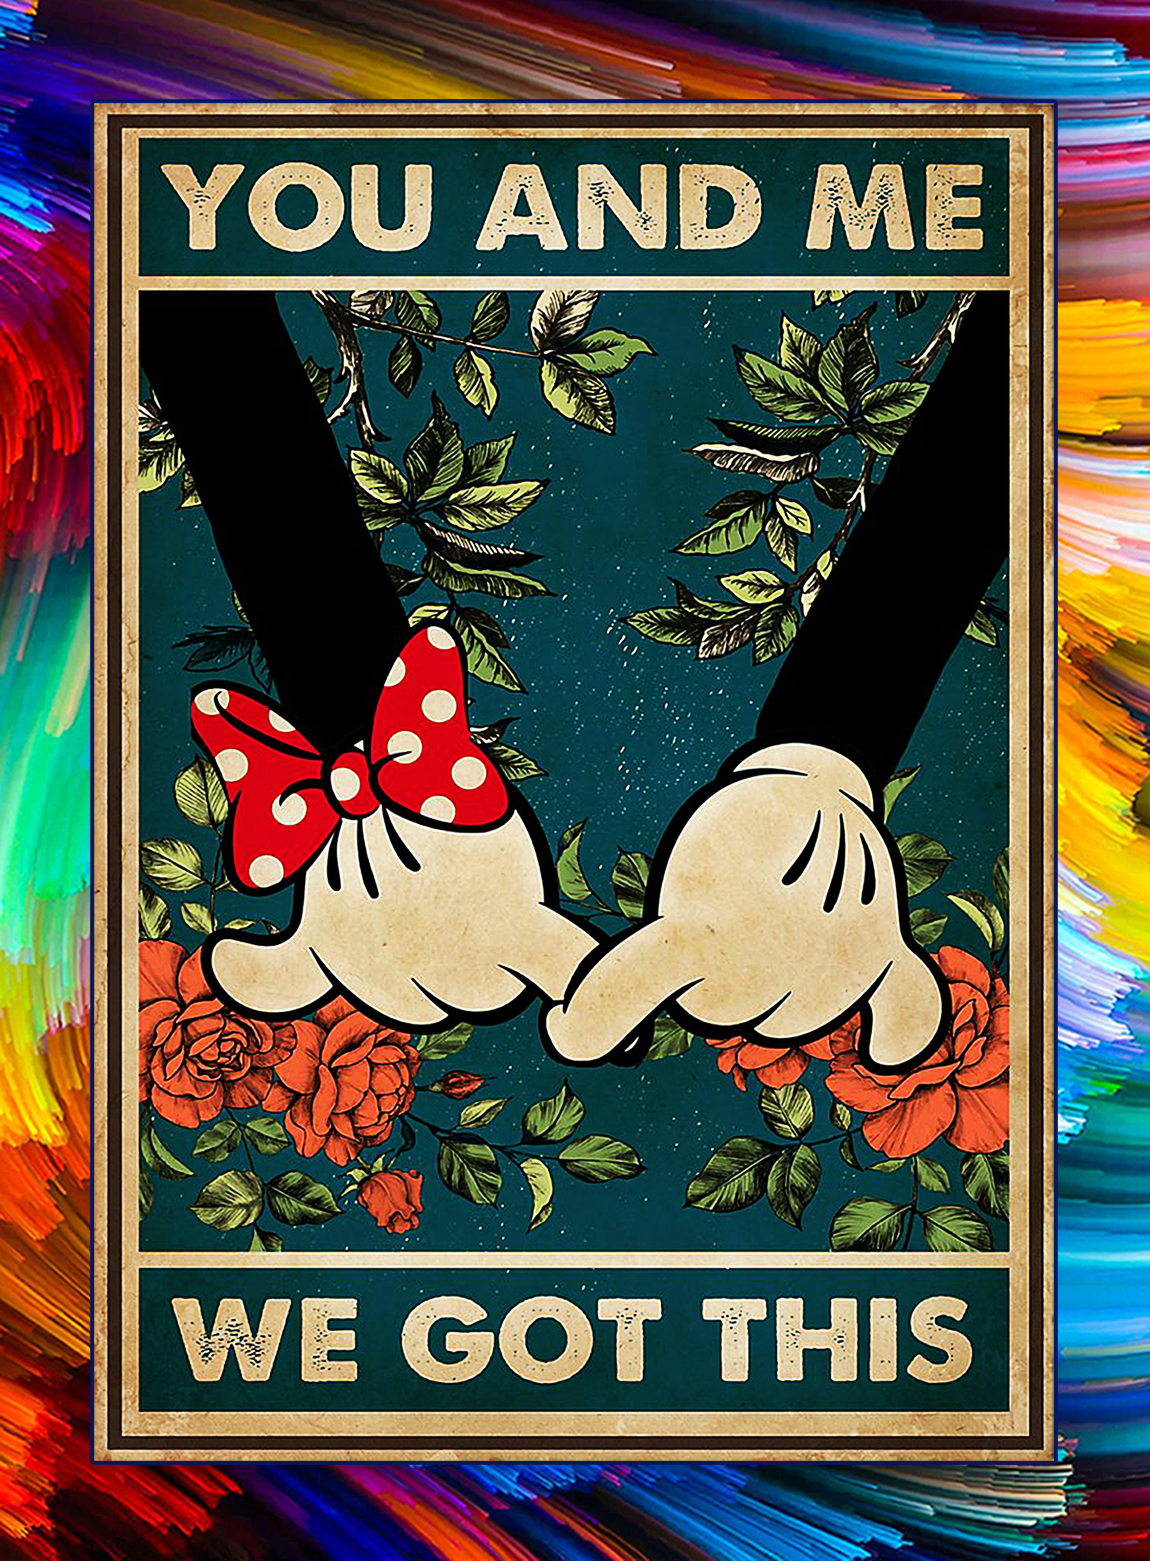 MICKEY AND MINNIE YOU AND ME WE GOT THIS POSTER - A3